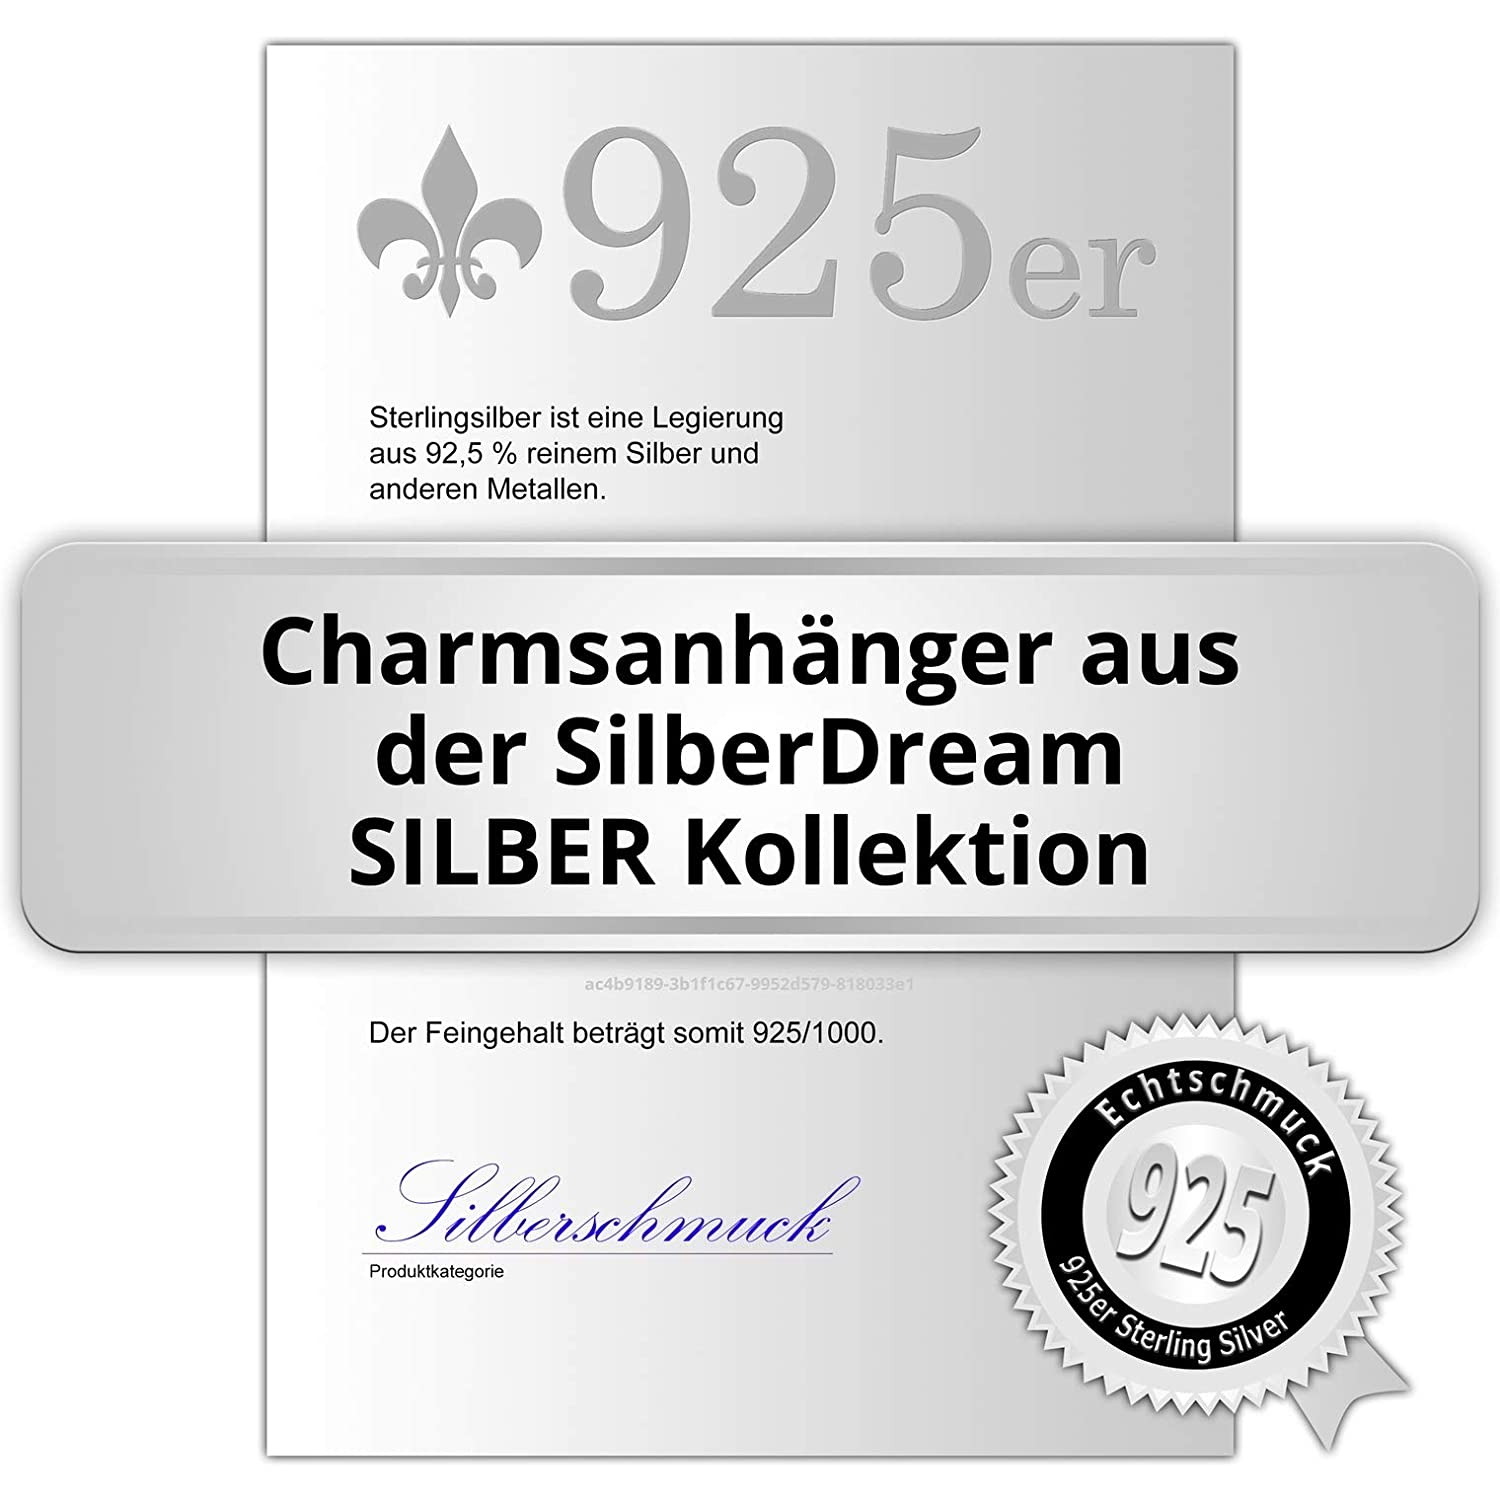 SilberDream GSC523S Glitter Charm Proud Swan Black Zirconia Crystals Pendant 925 Silver for Charm Bracelets Necklace Earrings